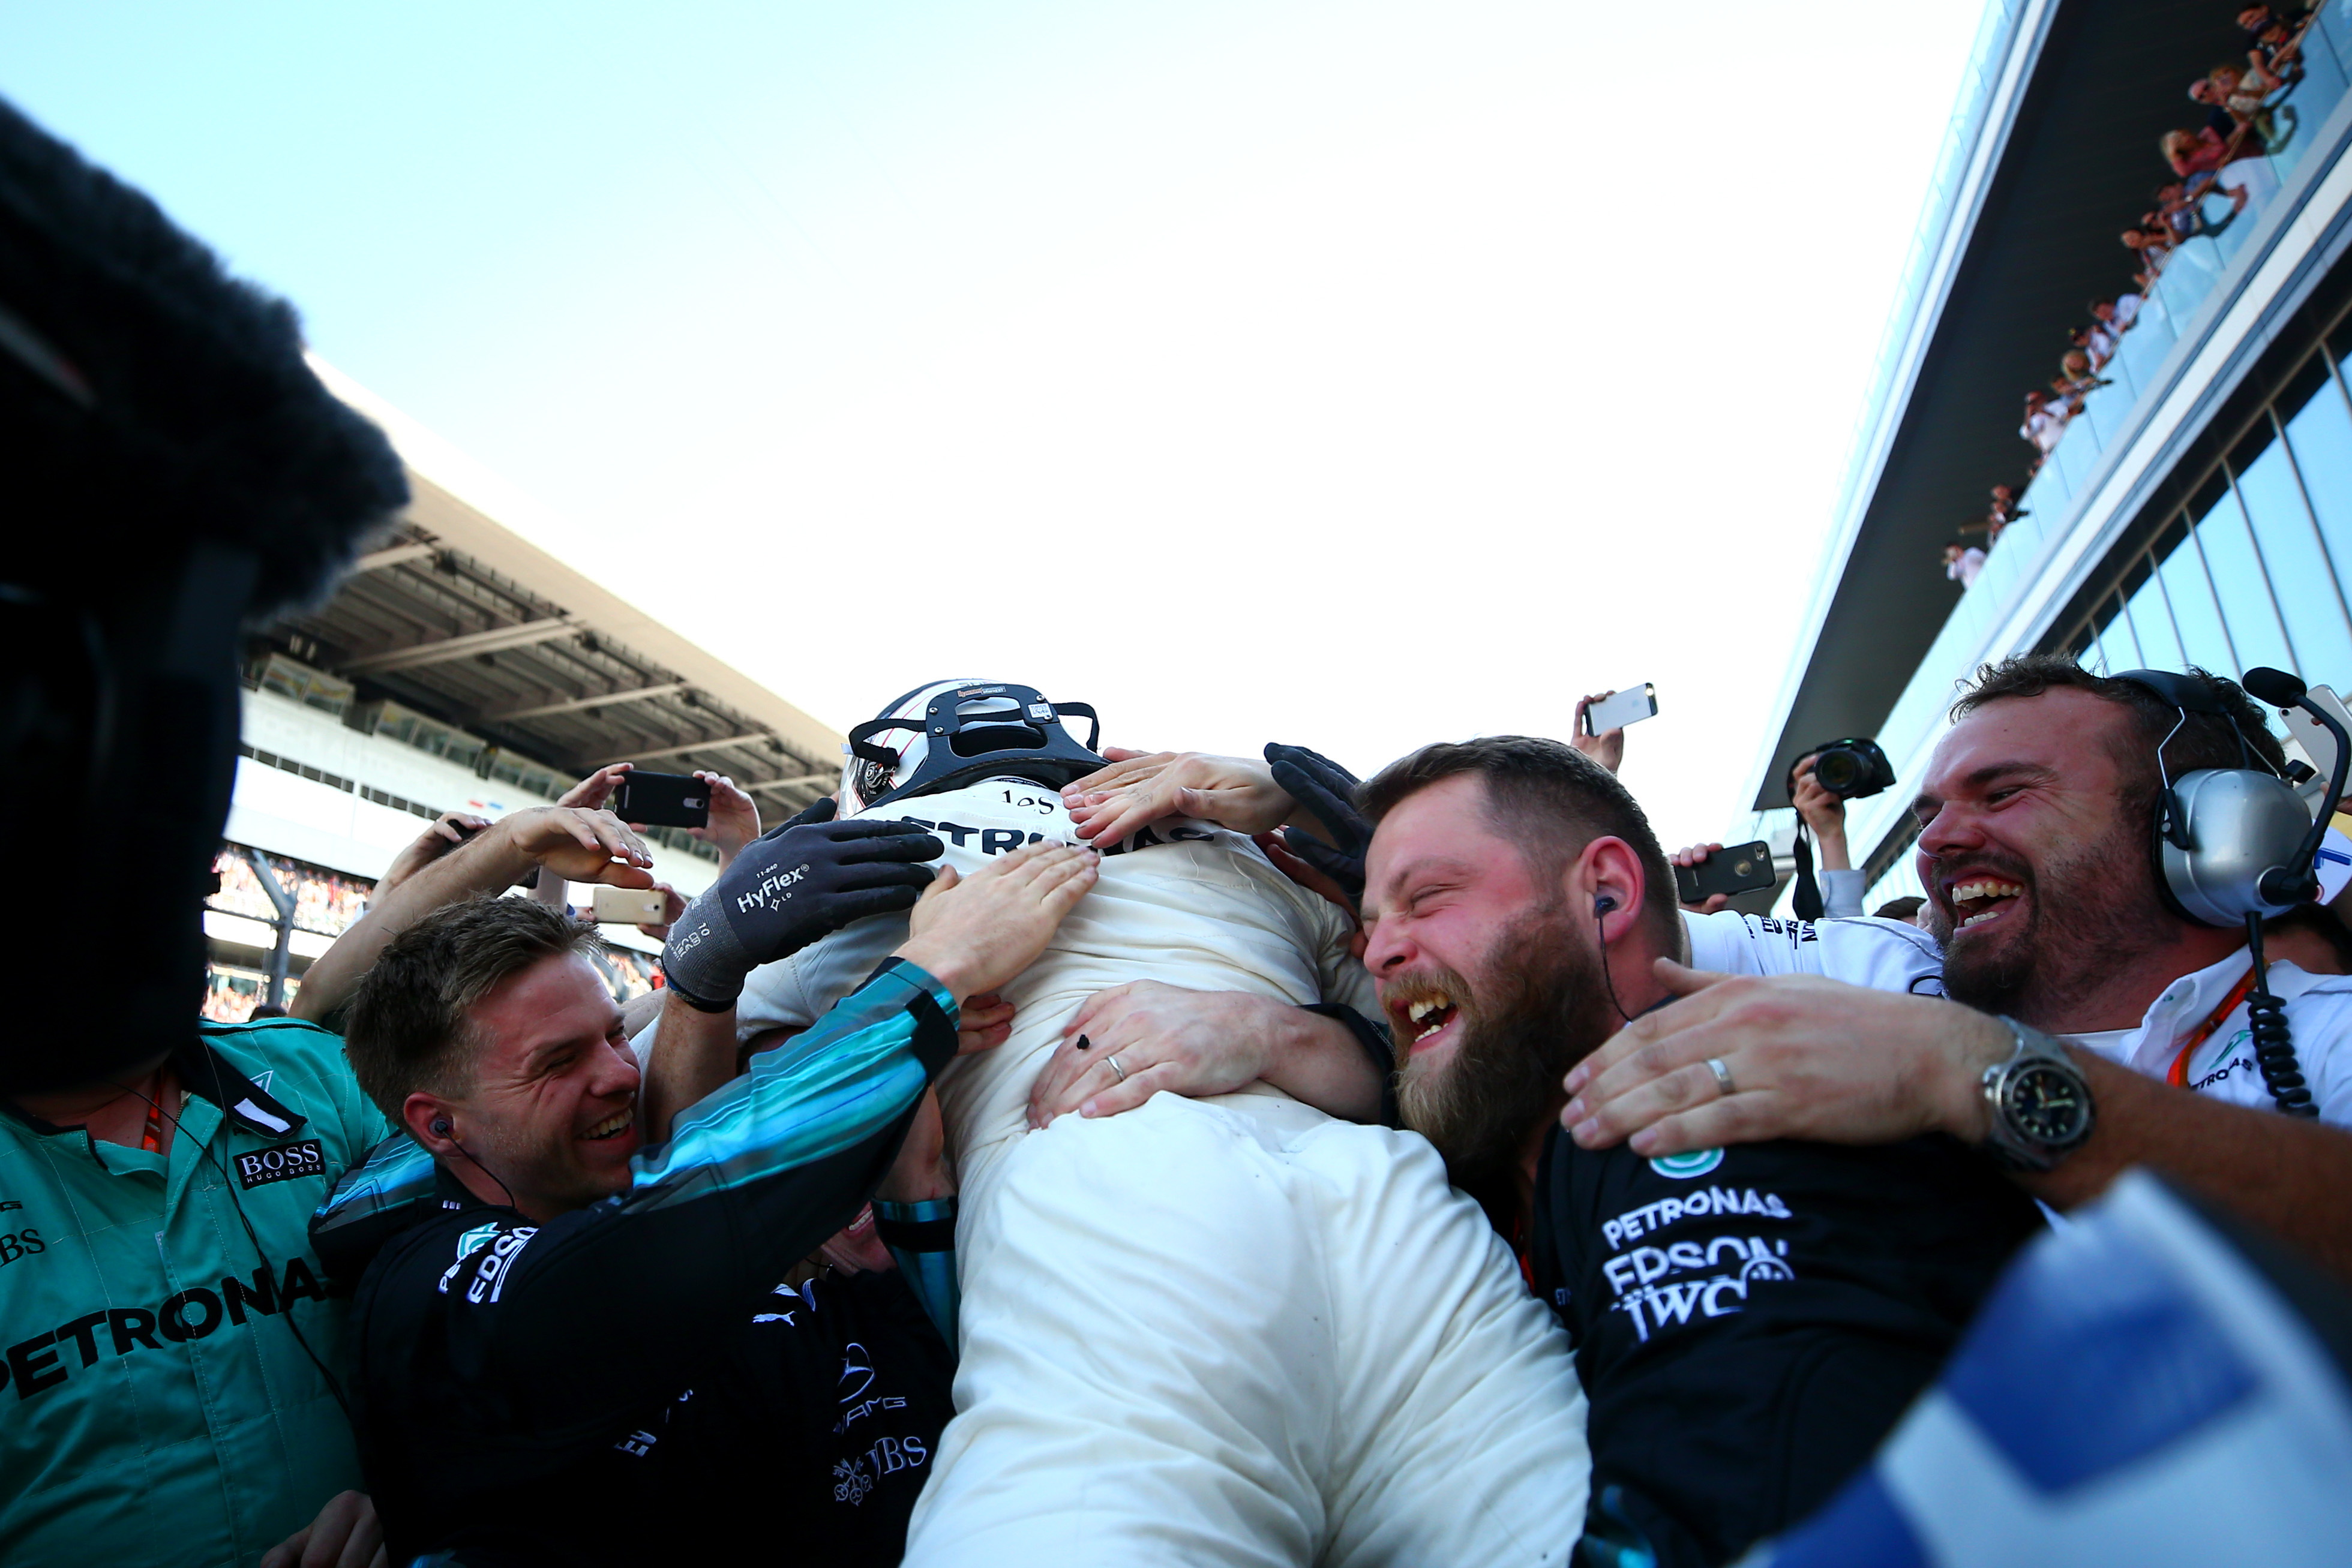 SOCHI, RUSSIA - APRIL 30: Race winner Valtteri Bottas of Finland and Mercedes GP celebrates in parc ferme during the Formula One Grand Prix of Russia on April 30, 2017 in Sochi, Russia. (Photo by Dan Istitene/Getty Images)